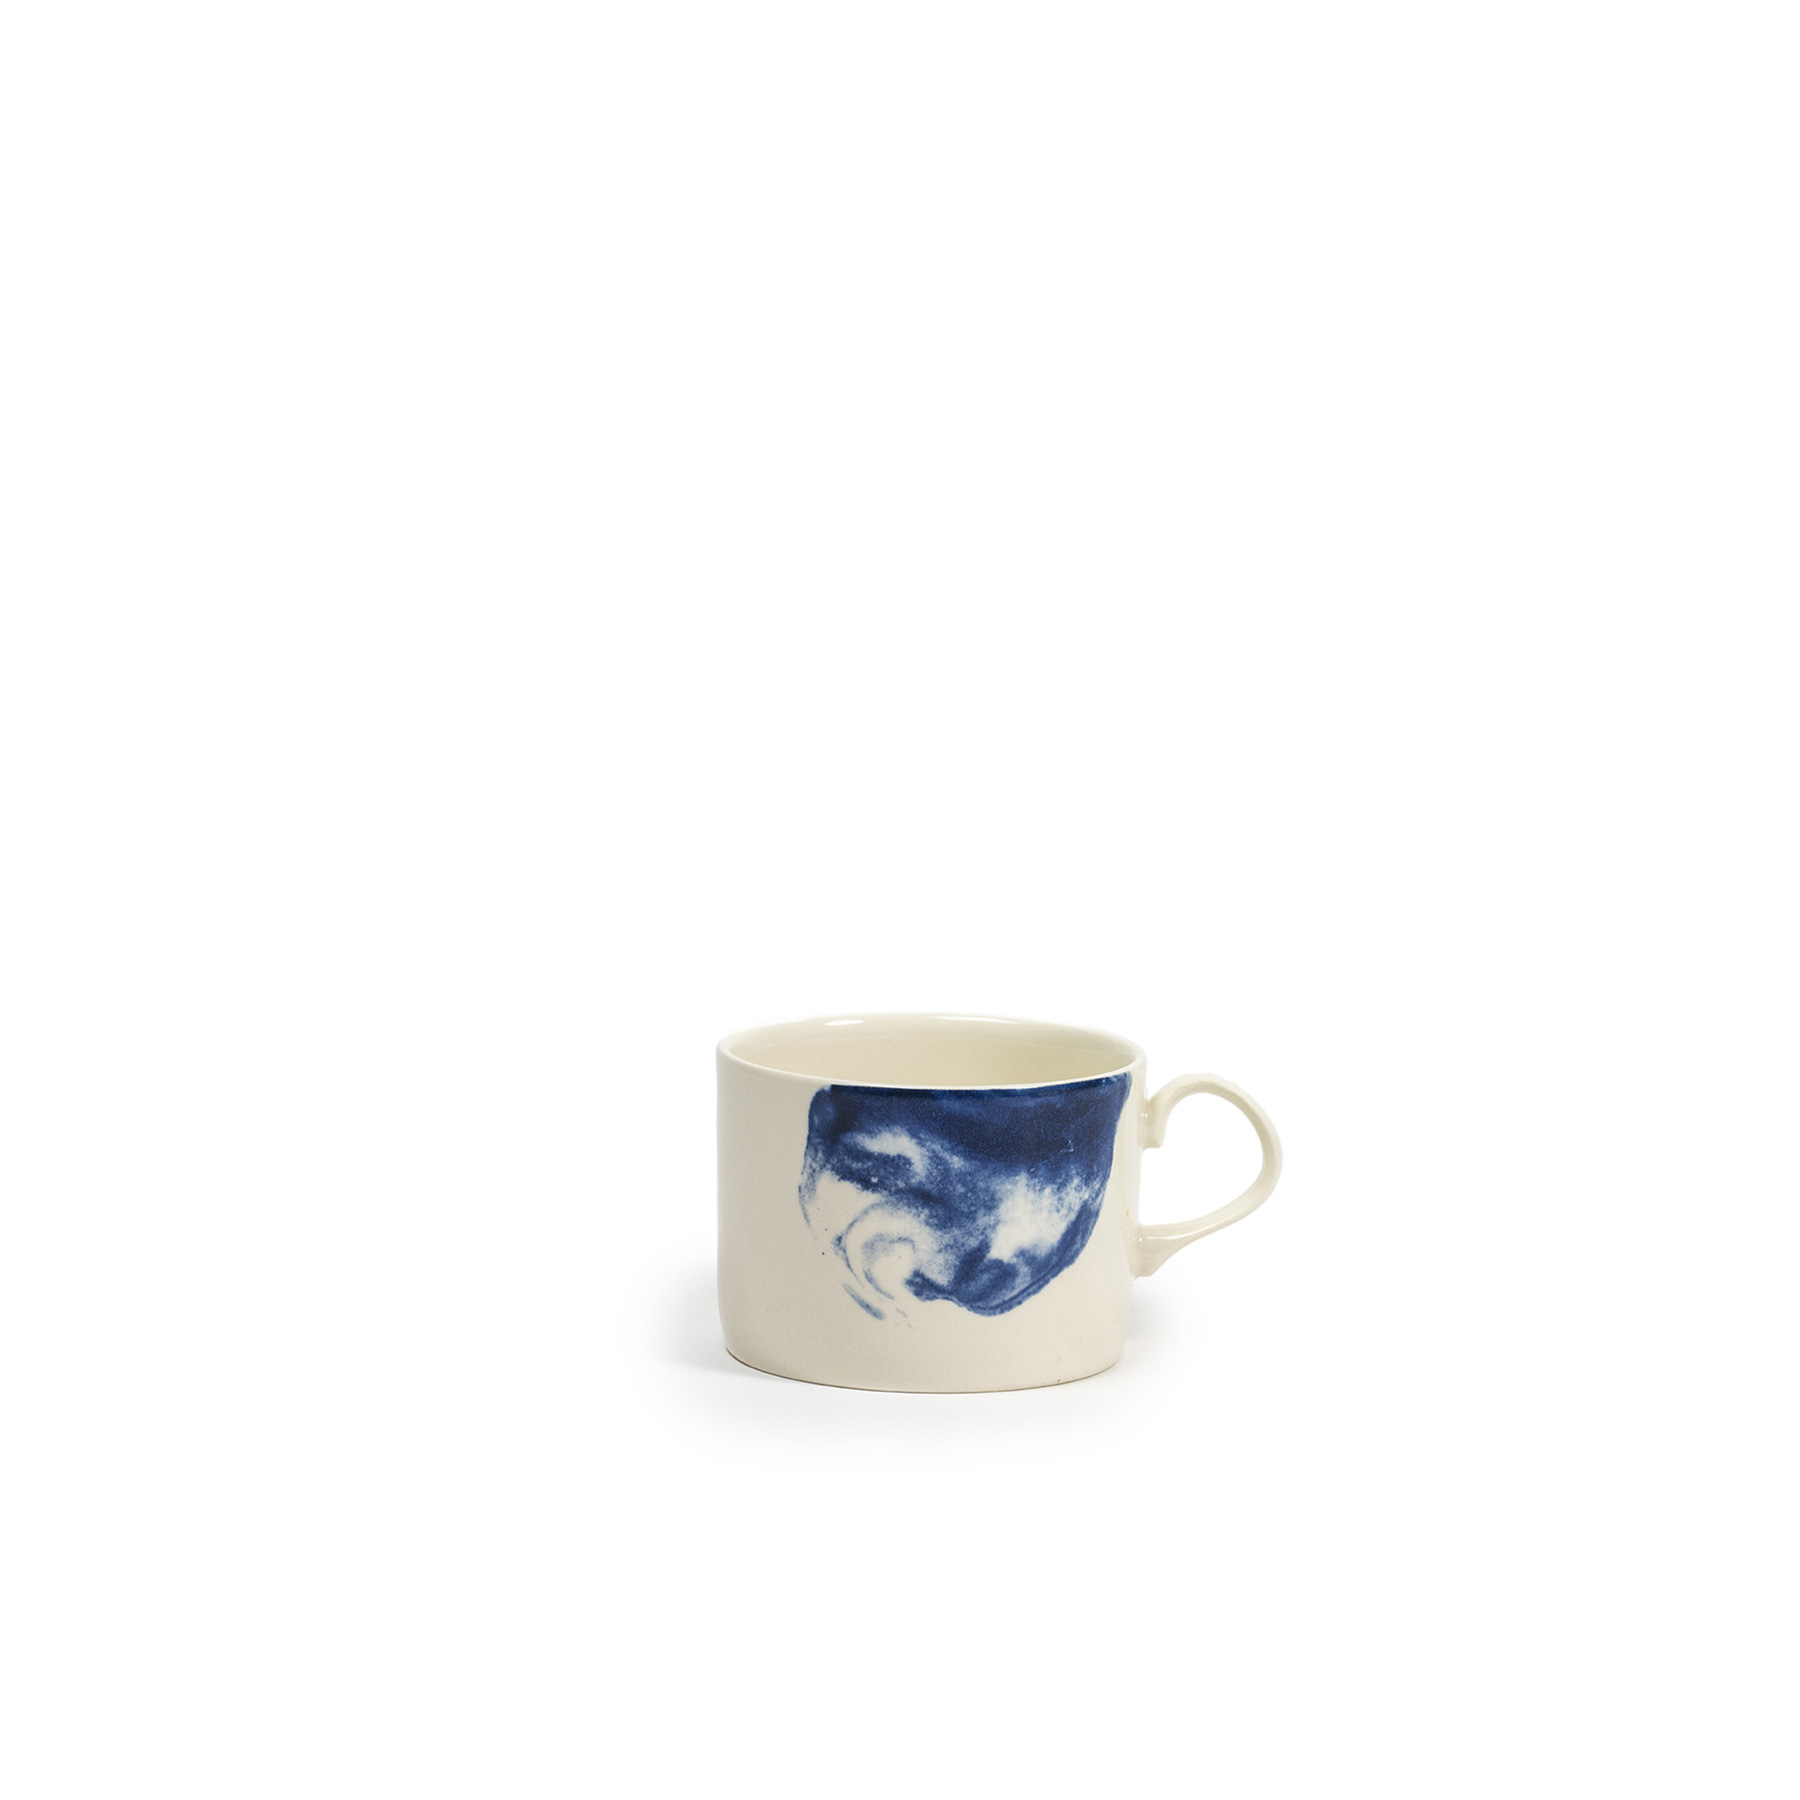 Indigo Storm Mug - Faye Toogood's range of ceramic designs for 1882 Ltd. celebrates the serendipitous beauty of natural imperfections. Indigo Storm, a new interpretation of traditional creamware forms, draws upon the chance patterns created when pigment added to the slip coating does not fully blend. The whorls and eddies resulting from these experiments, like meteorological formations in miniature, make up the collection's central motifs, appearing on pieces including plates, bowls and cups. Representing a streamlined take on our ceramic heritage, the fine earthenware employs the familiar tones of English Delftware: cream offset with a rich, deep blue. Dishwasher and Microwave safe.